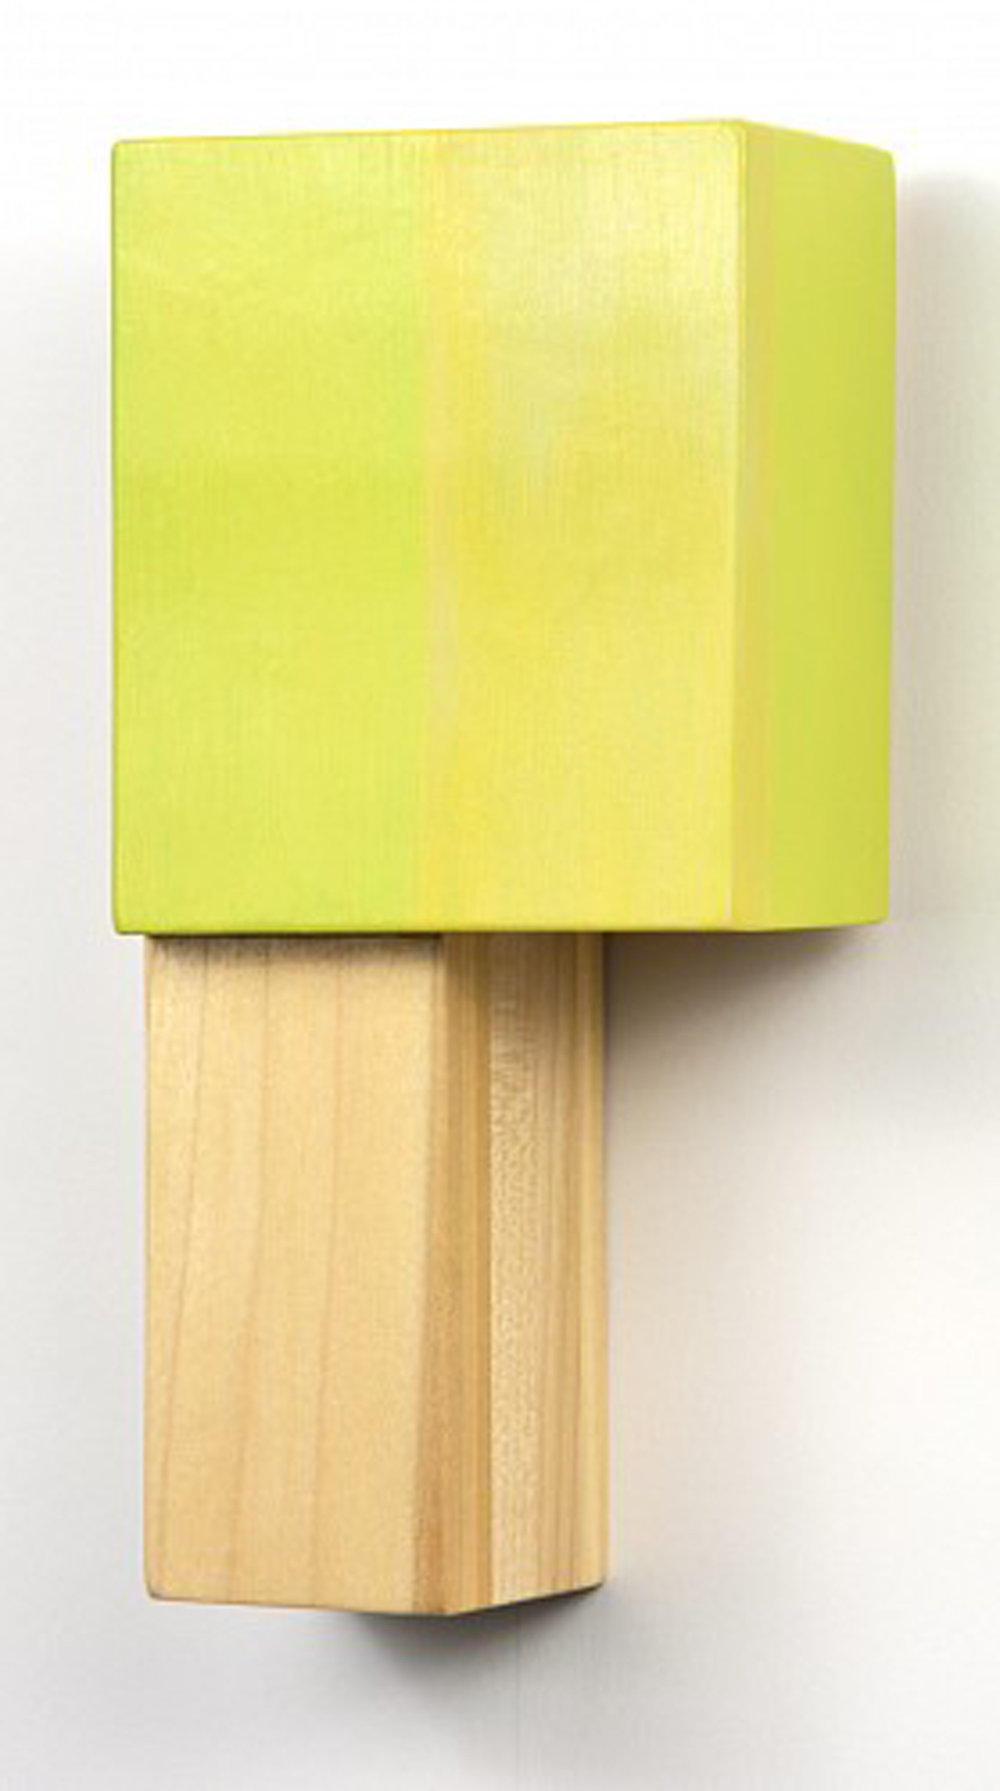 Dominion 4, 10 x 5 x 3 inches / 25.4 x 12.7 x 7.6 cm, acrylic on laminated poplar, 2013